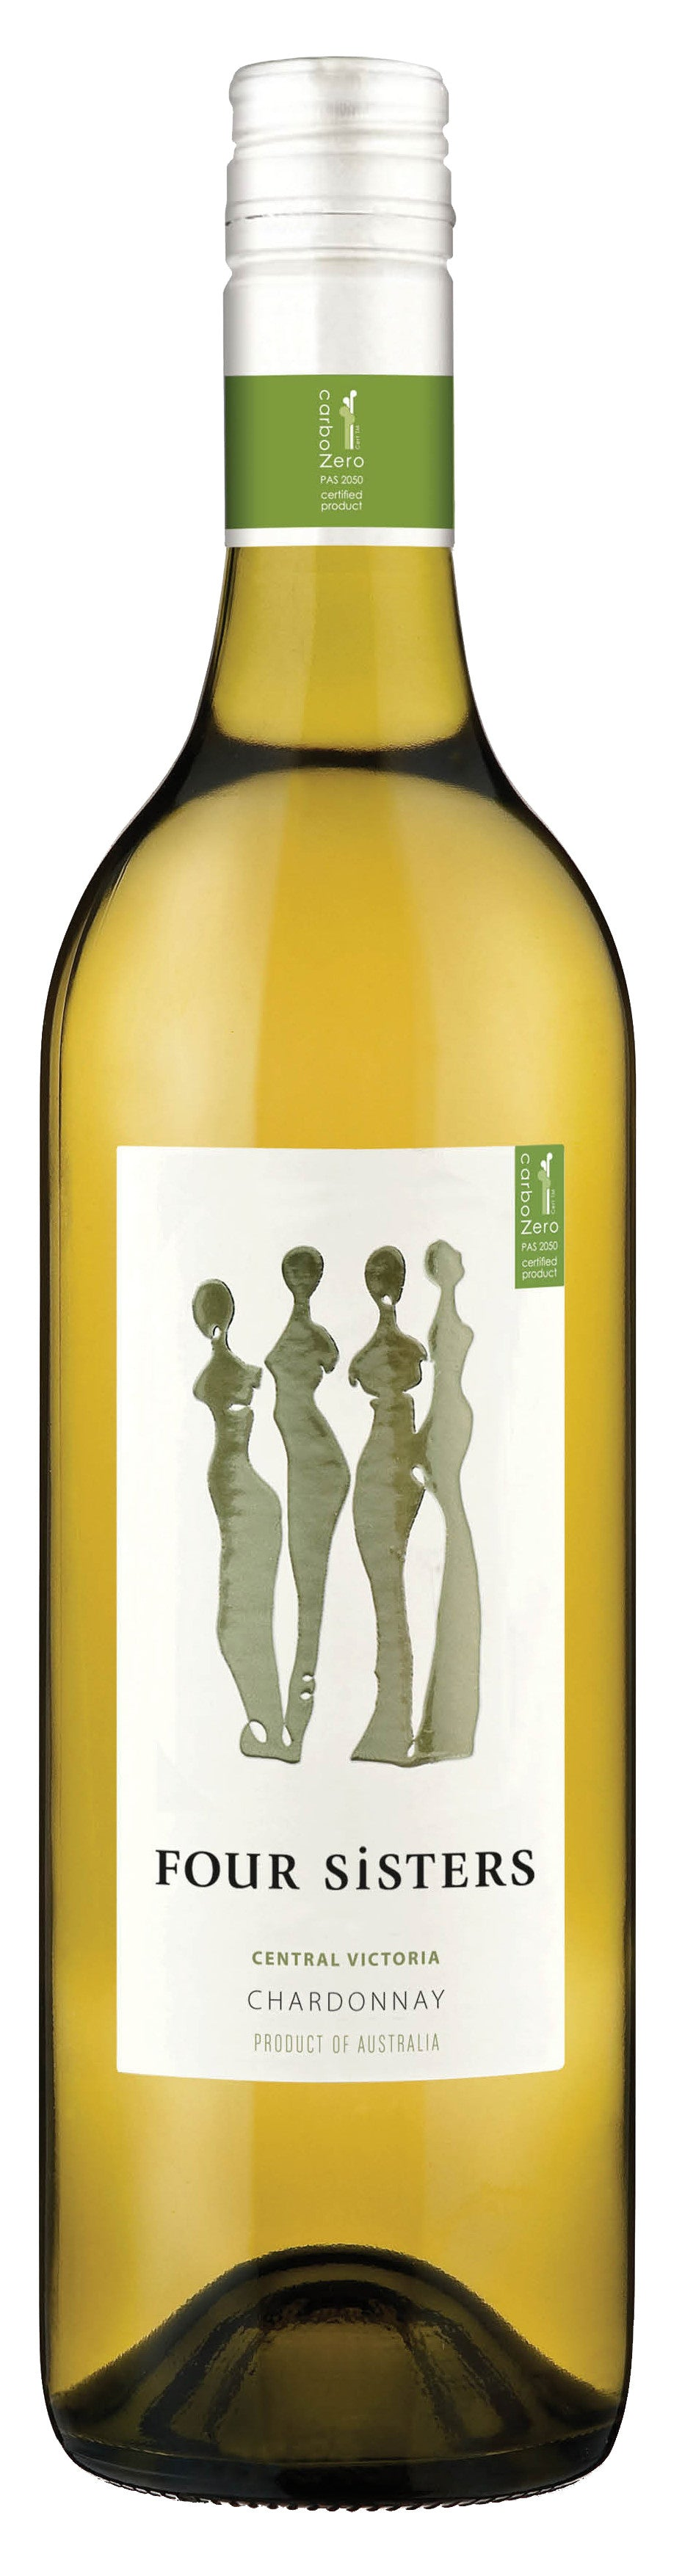 Four Sisters Chardonnay 2015 - Network Wines